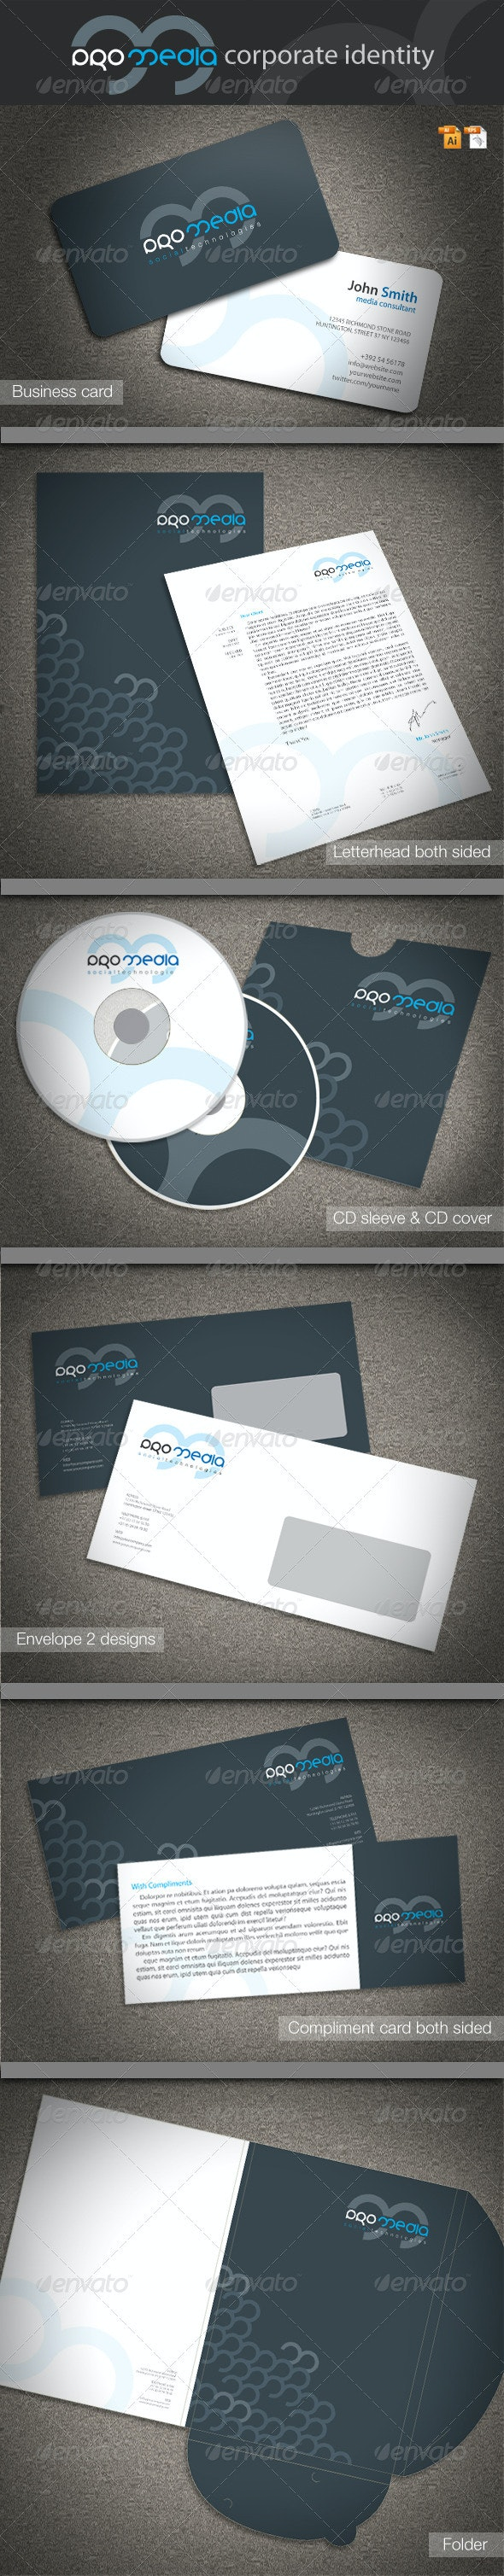 Pro Media Corporate Identity - Stationery Print Templates